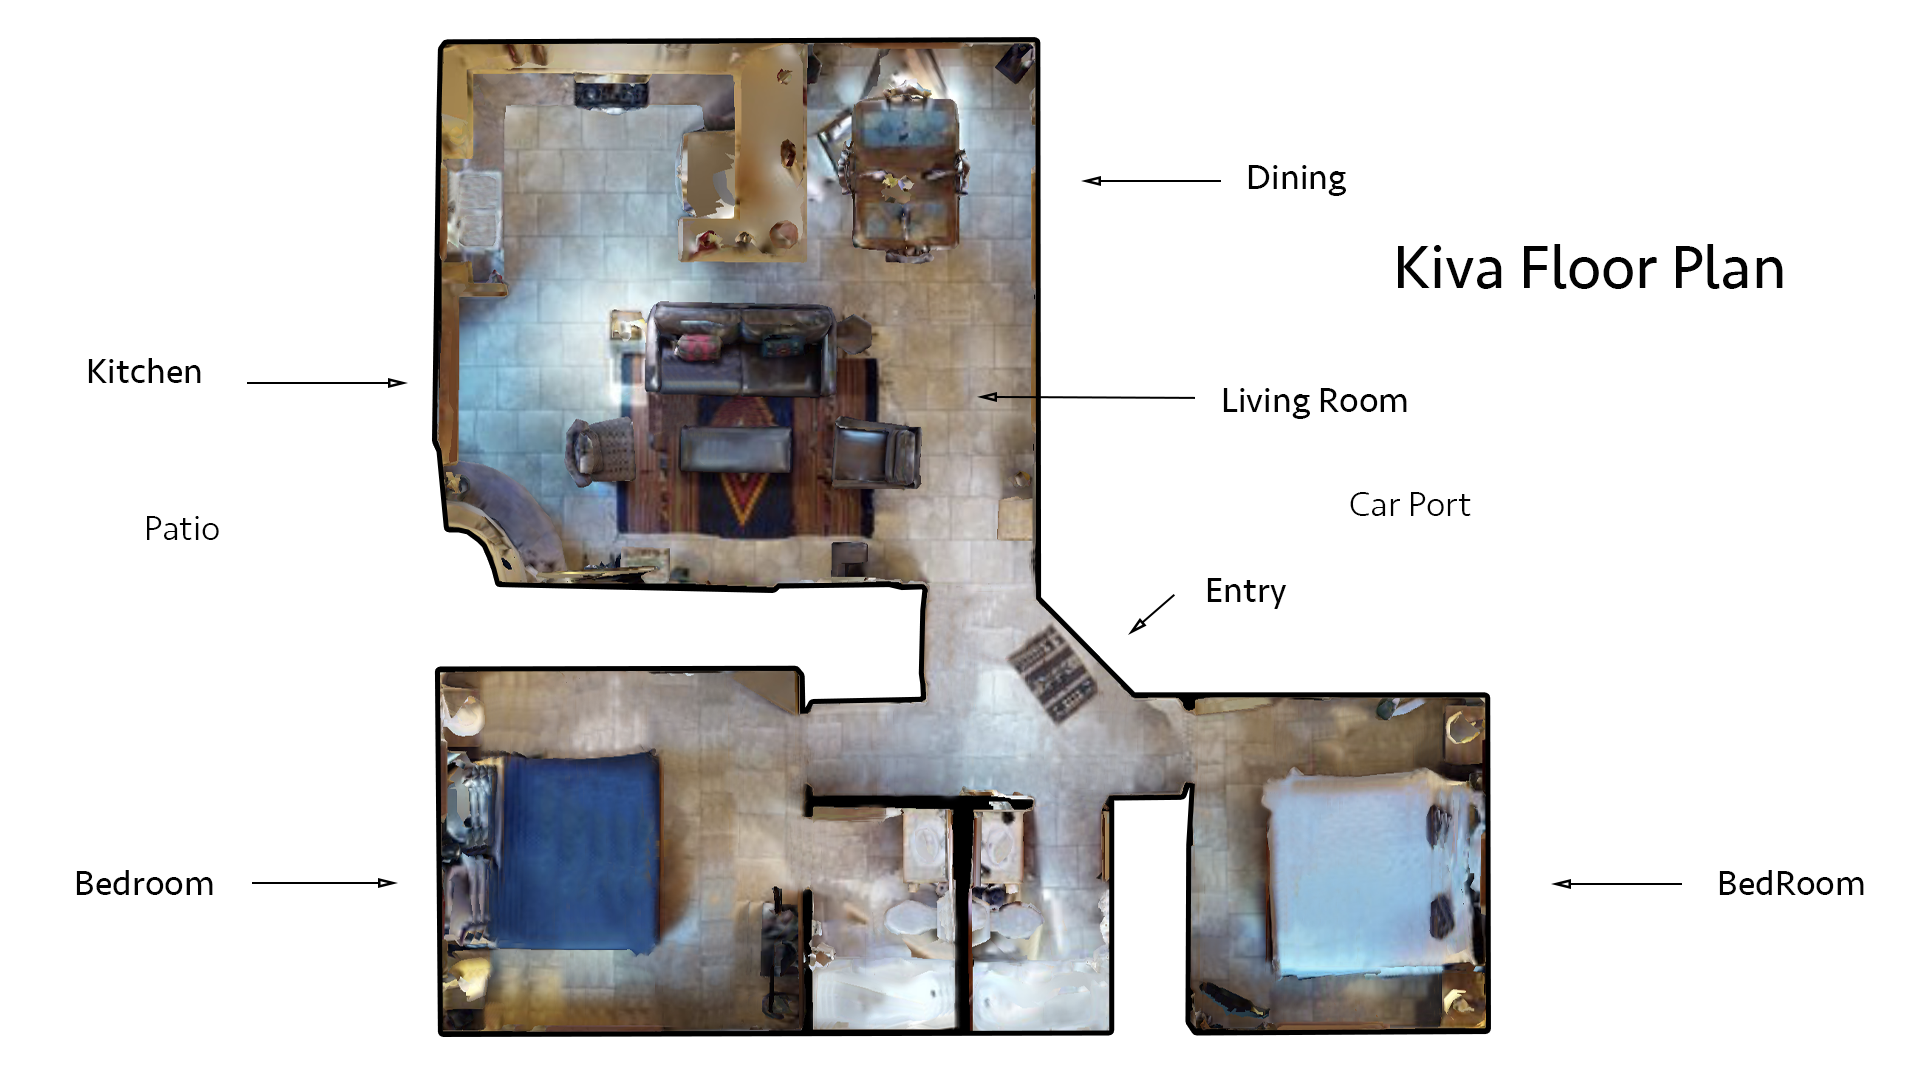 Floor Plan for Kiva